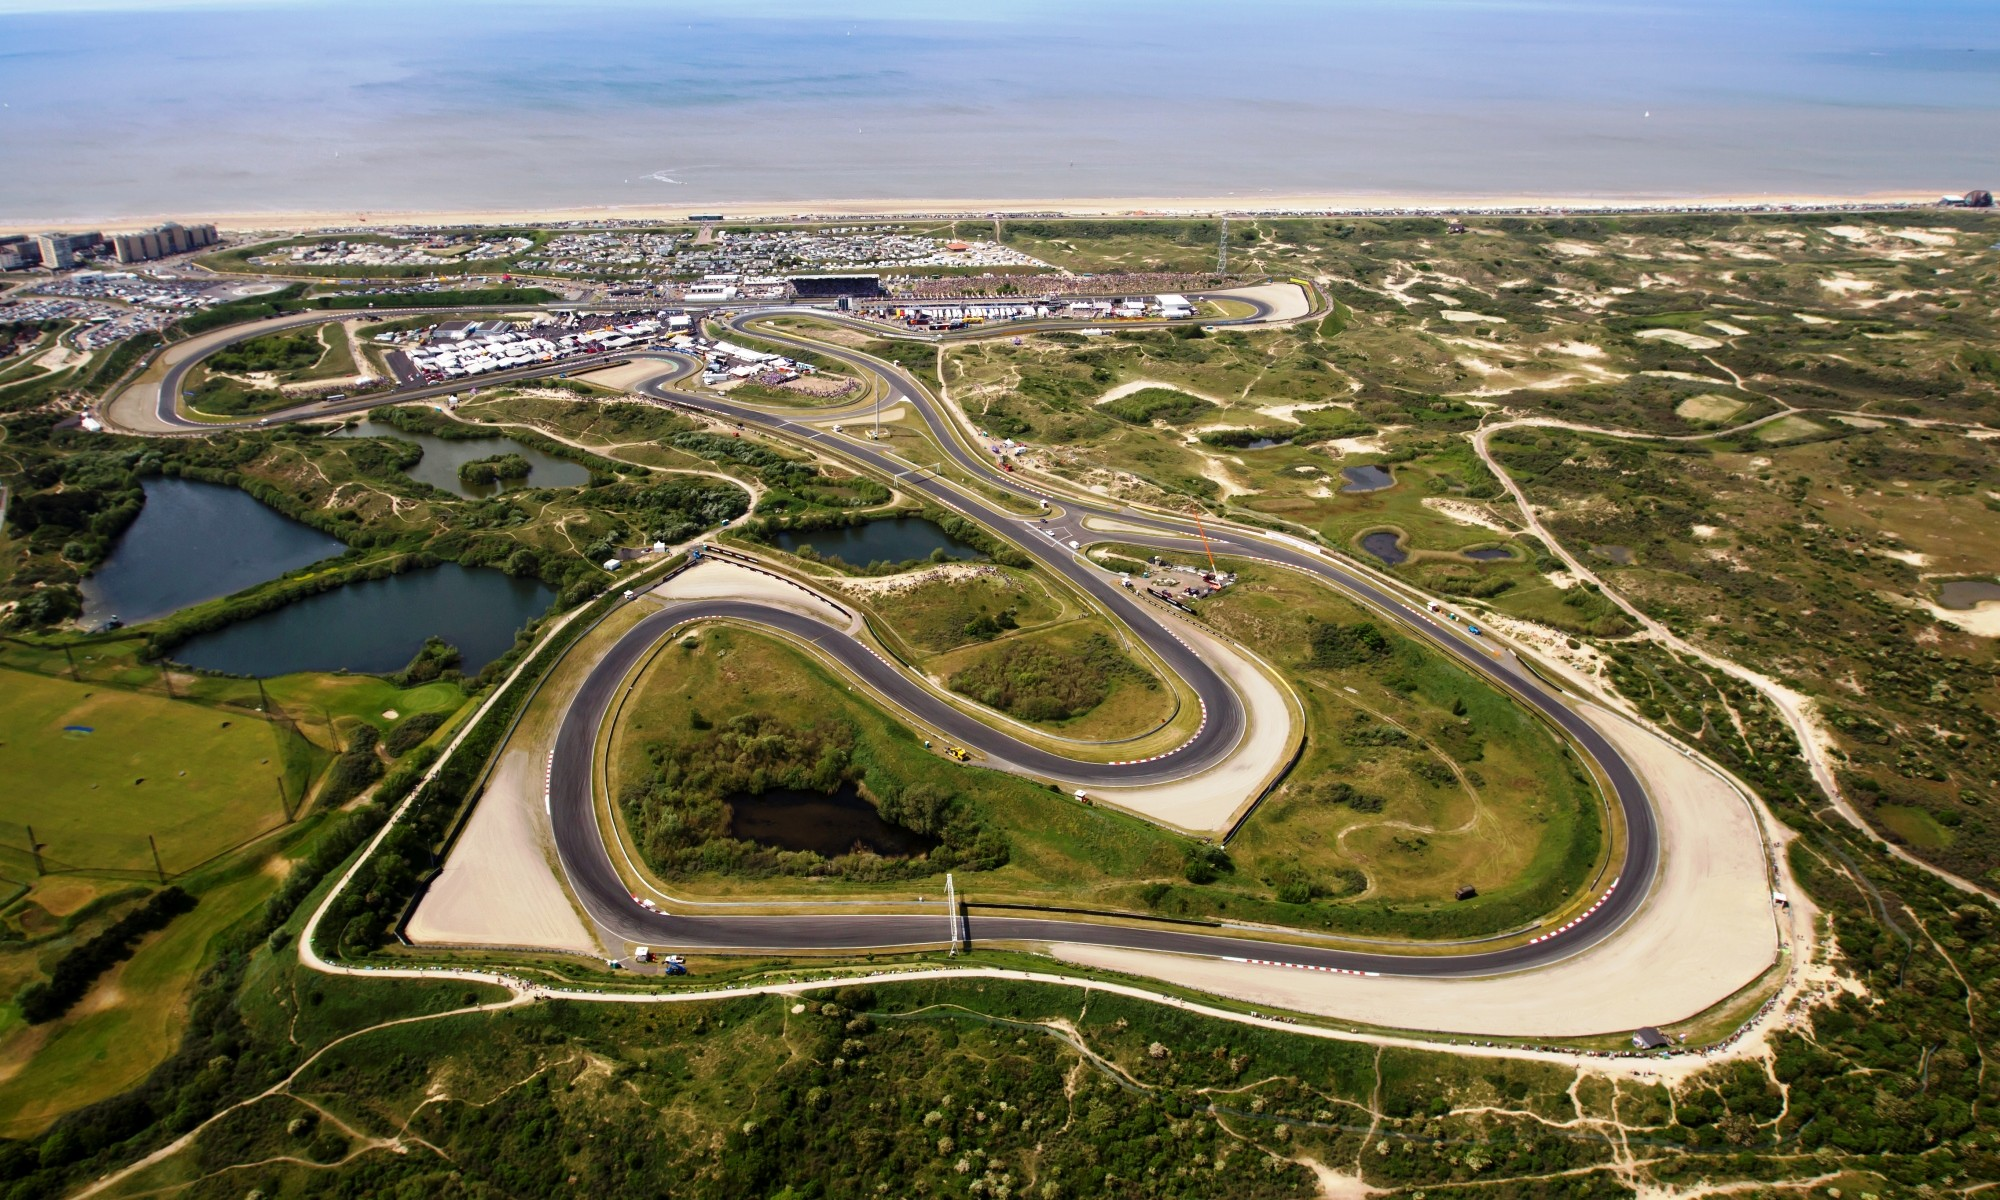 Dutch F1 GP Returns in 2020